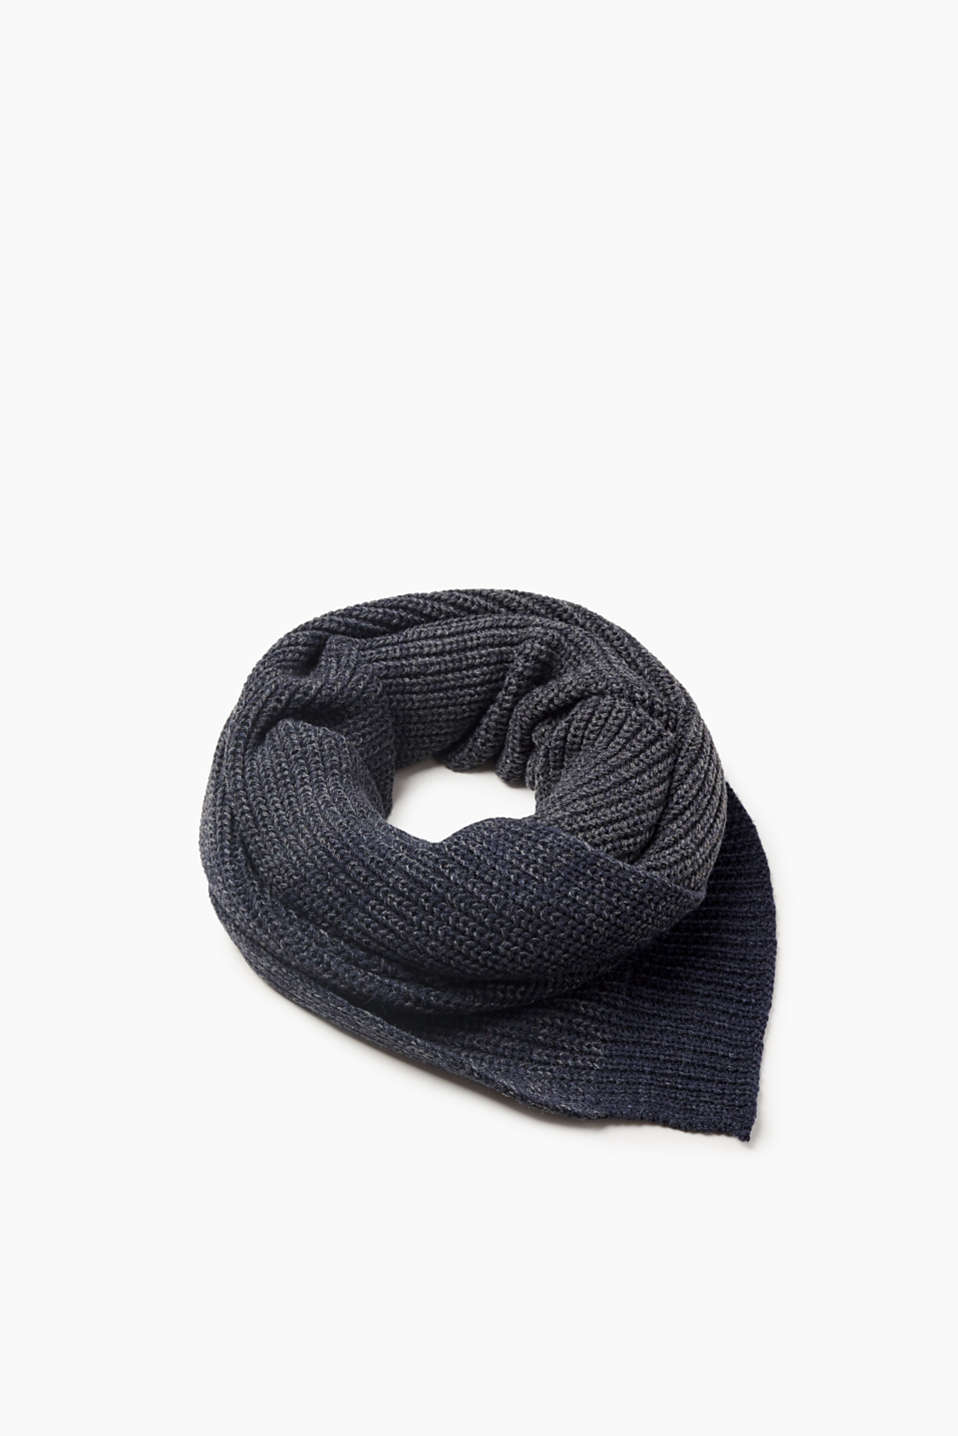 This gentle scarf, with its melange style and soft material mix, will become a favourite accessory